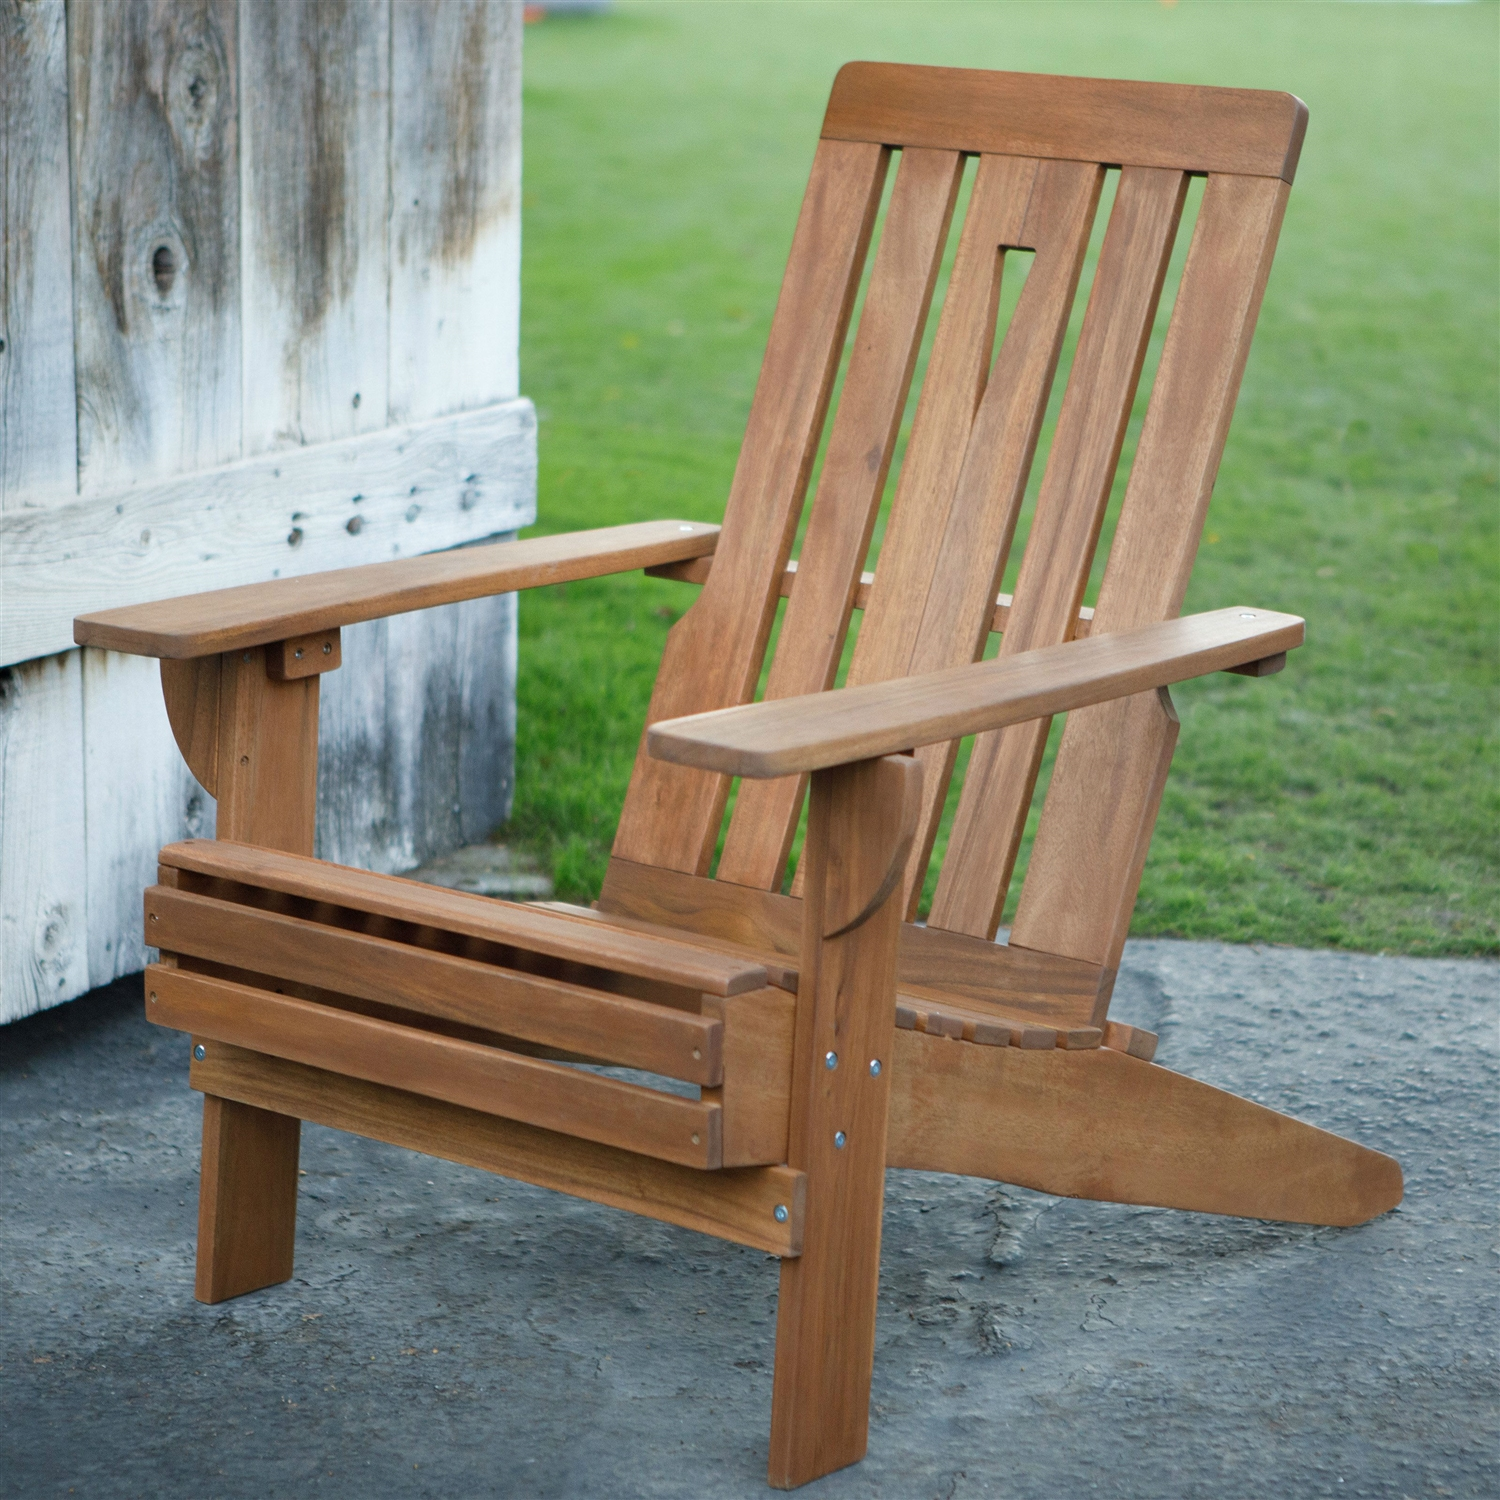 Swell Outdoor Hardwood Square Back Adirondack Chair With Oversized Contoured Seat Gamerscity Chair Design For Home Gamerscityorg